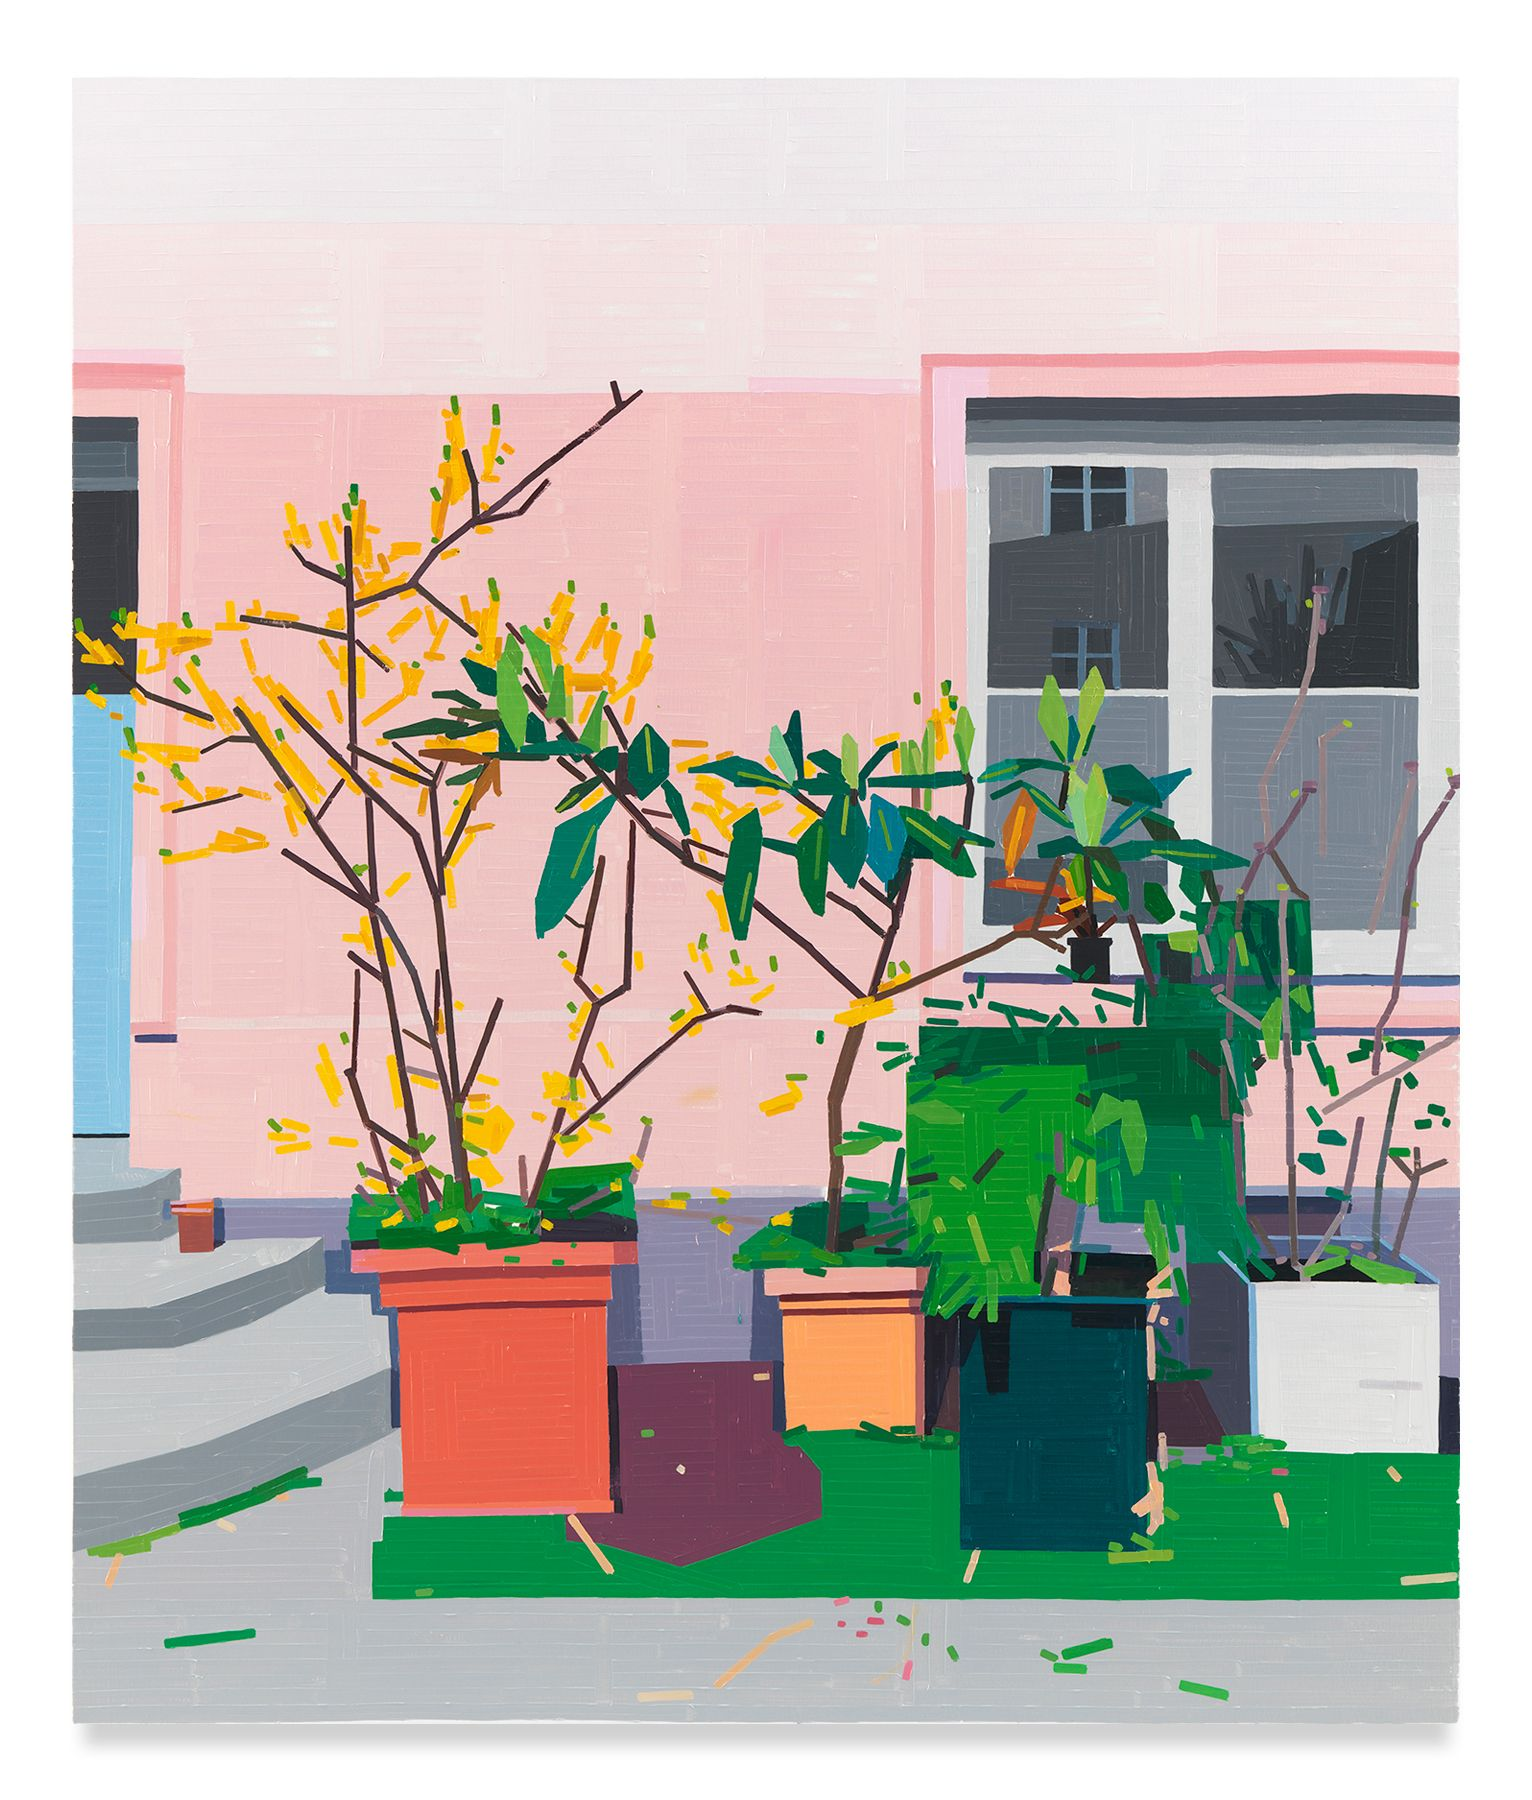 Courtyard, 2020,Oil on canvas,74 3/4 x 63 inches,190 x 160 cm,MMG#32037